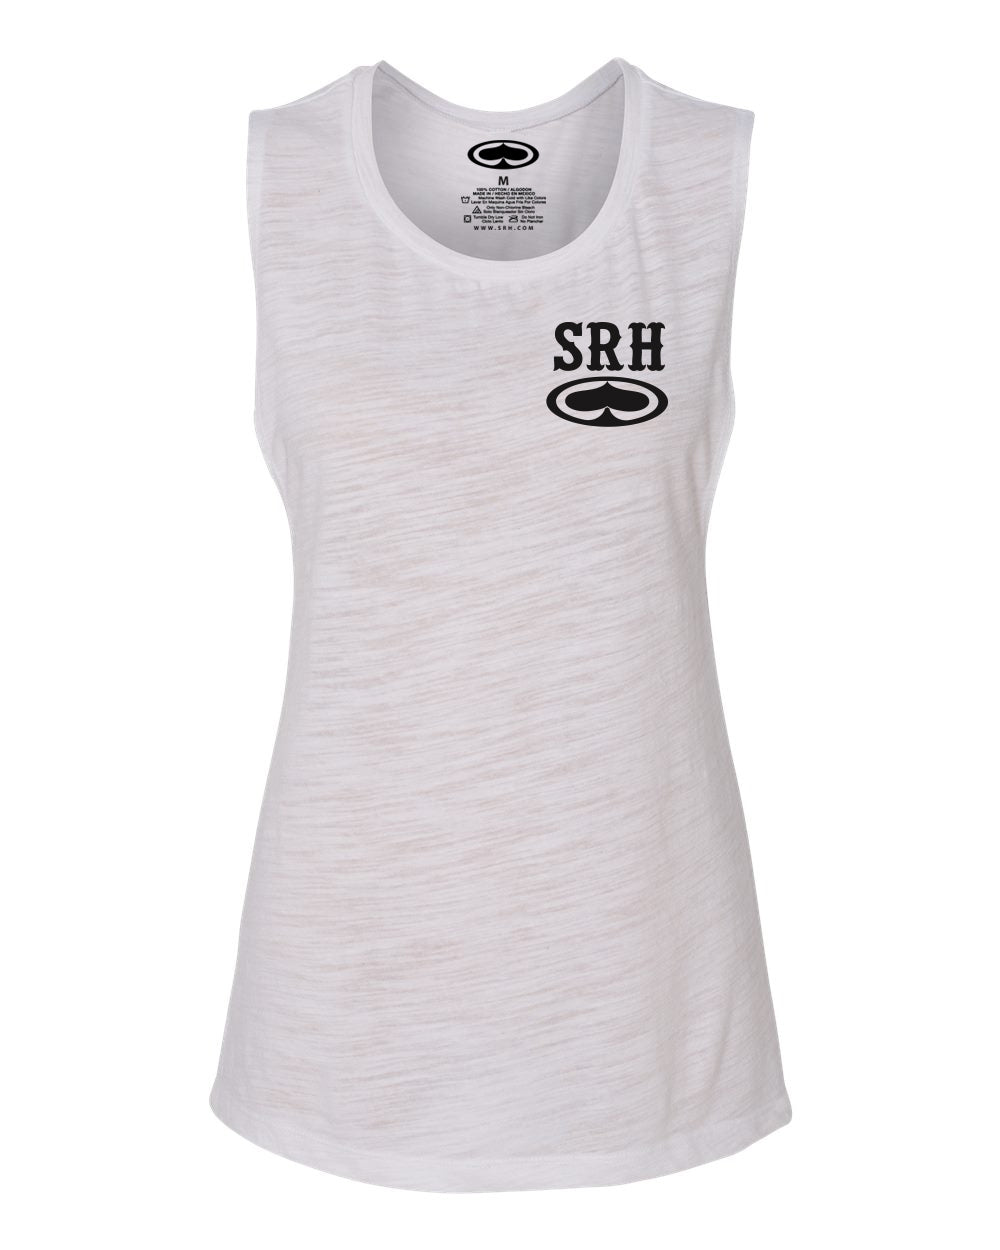 SRH Rocker Womens Slub Tank Top (White)